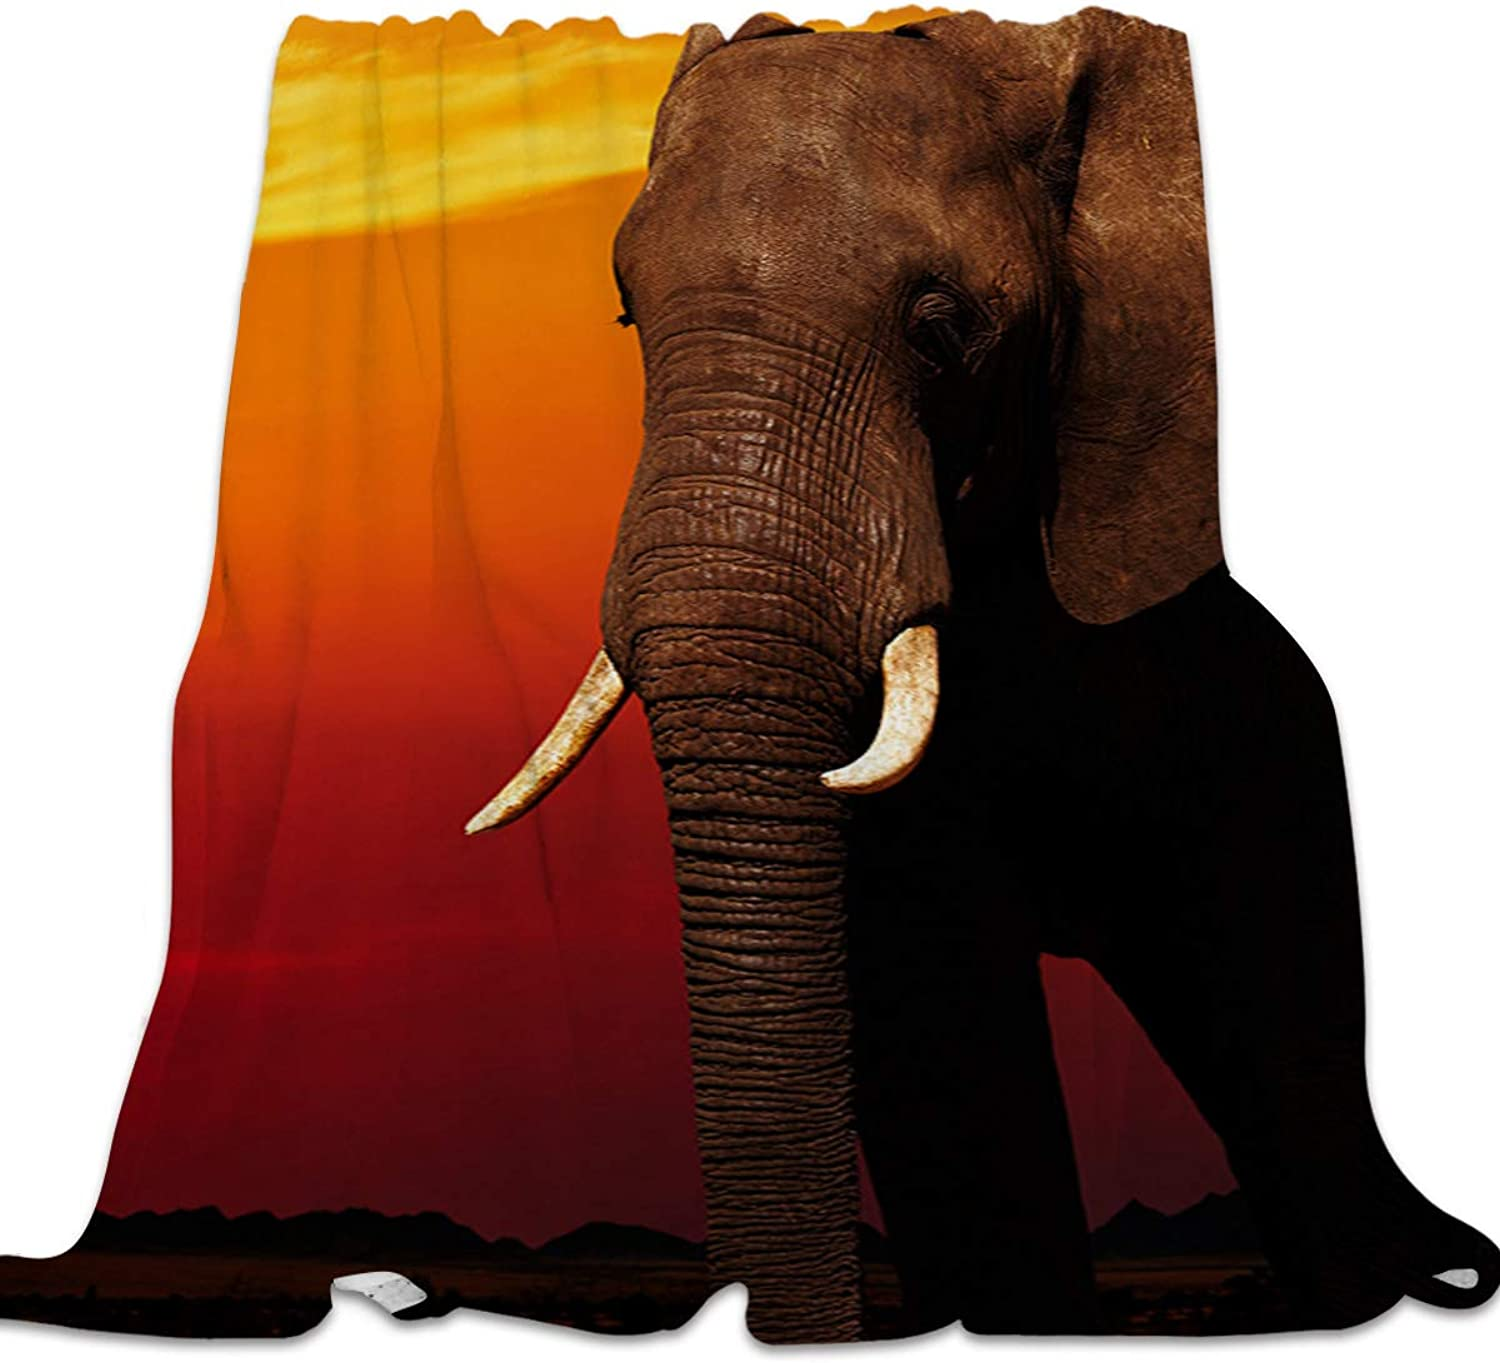 YEHO Art Gallery Soft Flannel Fleece Bed Blanket Throw-Blankets for Girls Boys,Because Landscape of Elephant Animal Pattern,Lightweight Warm Blankets for Bedroom Living Room Sofa Couch,39x49inch